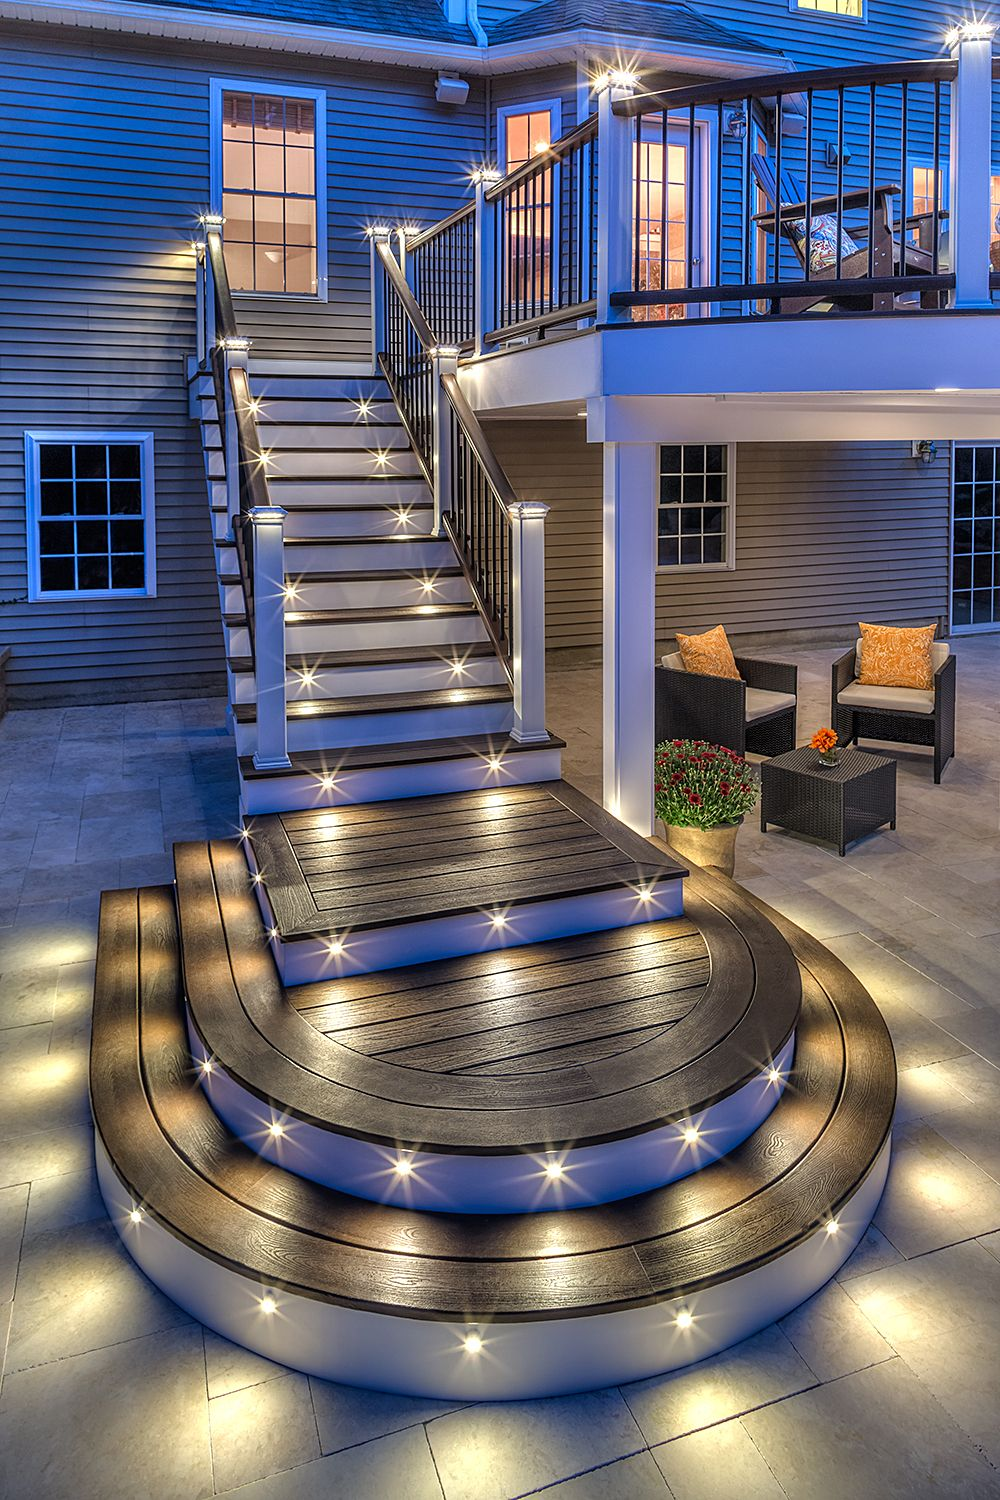 Best Professional Building Services Curved Stairs 603 898 2977 640 x 480